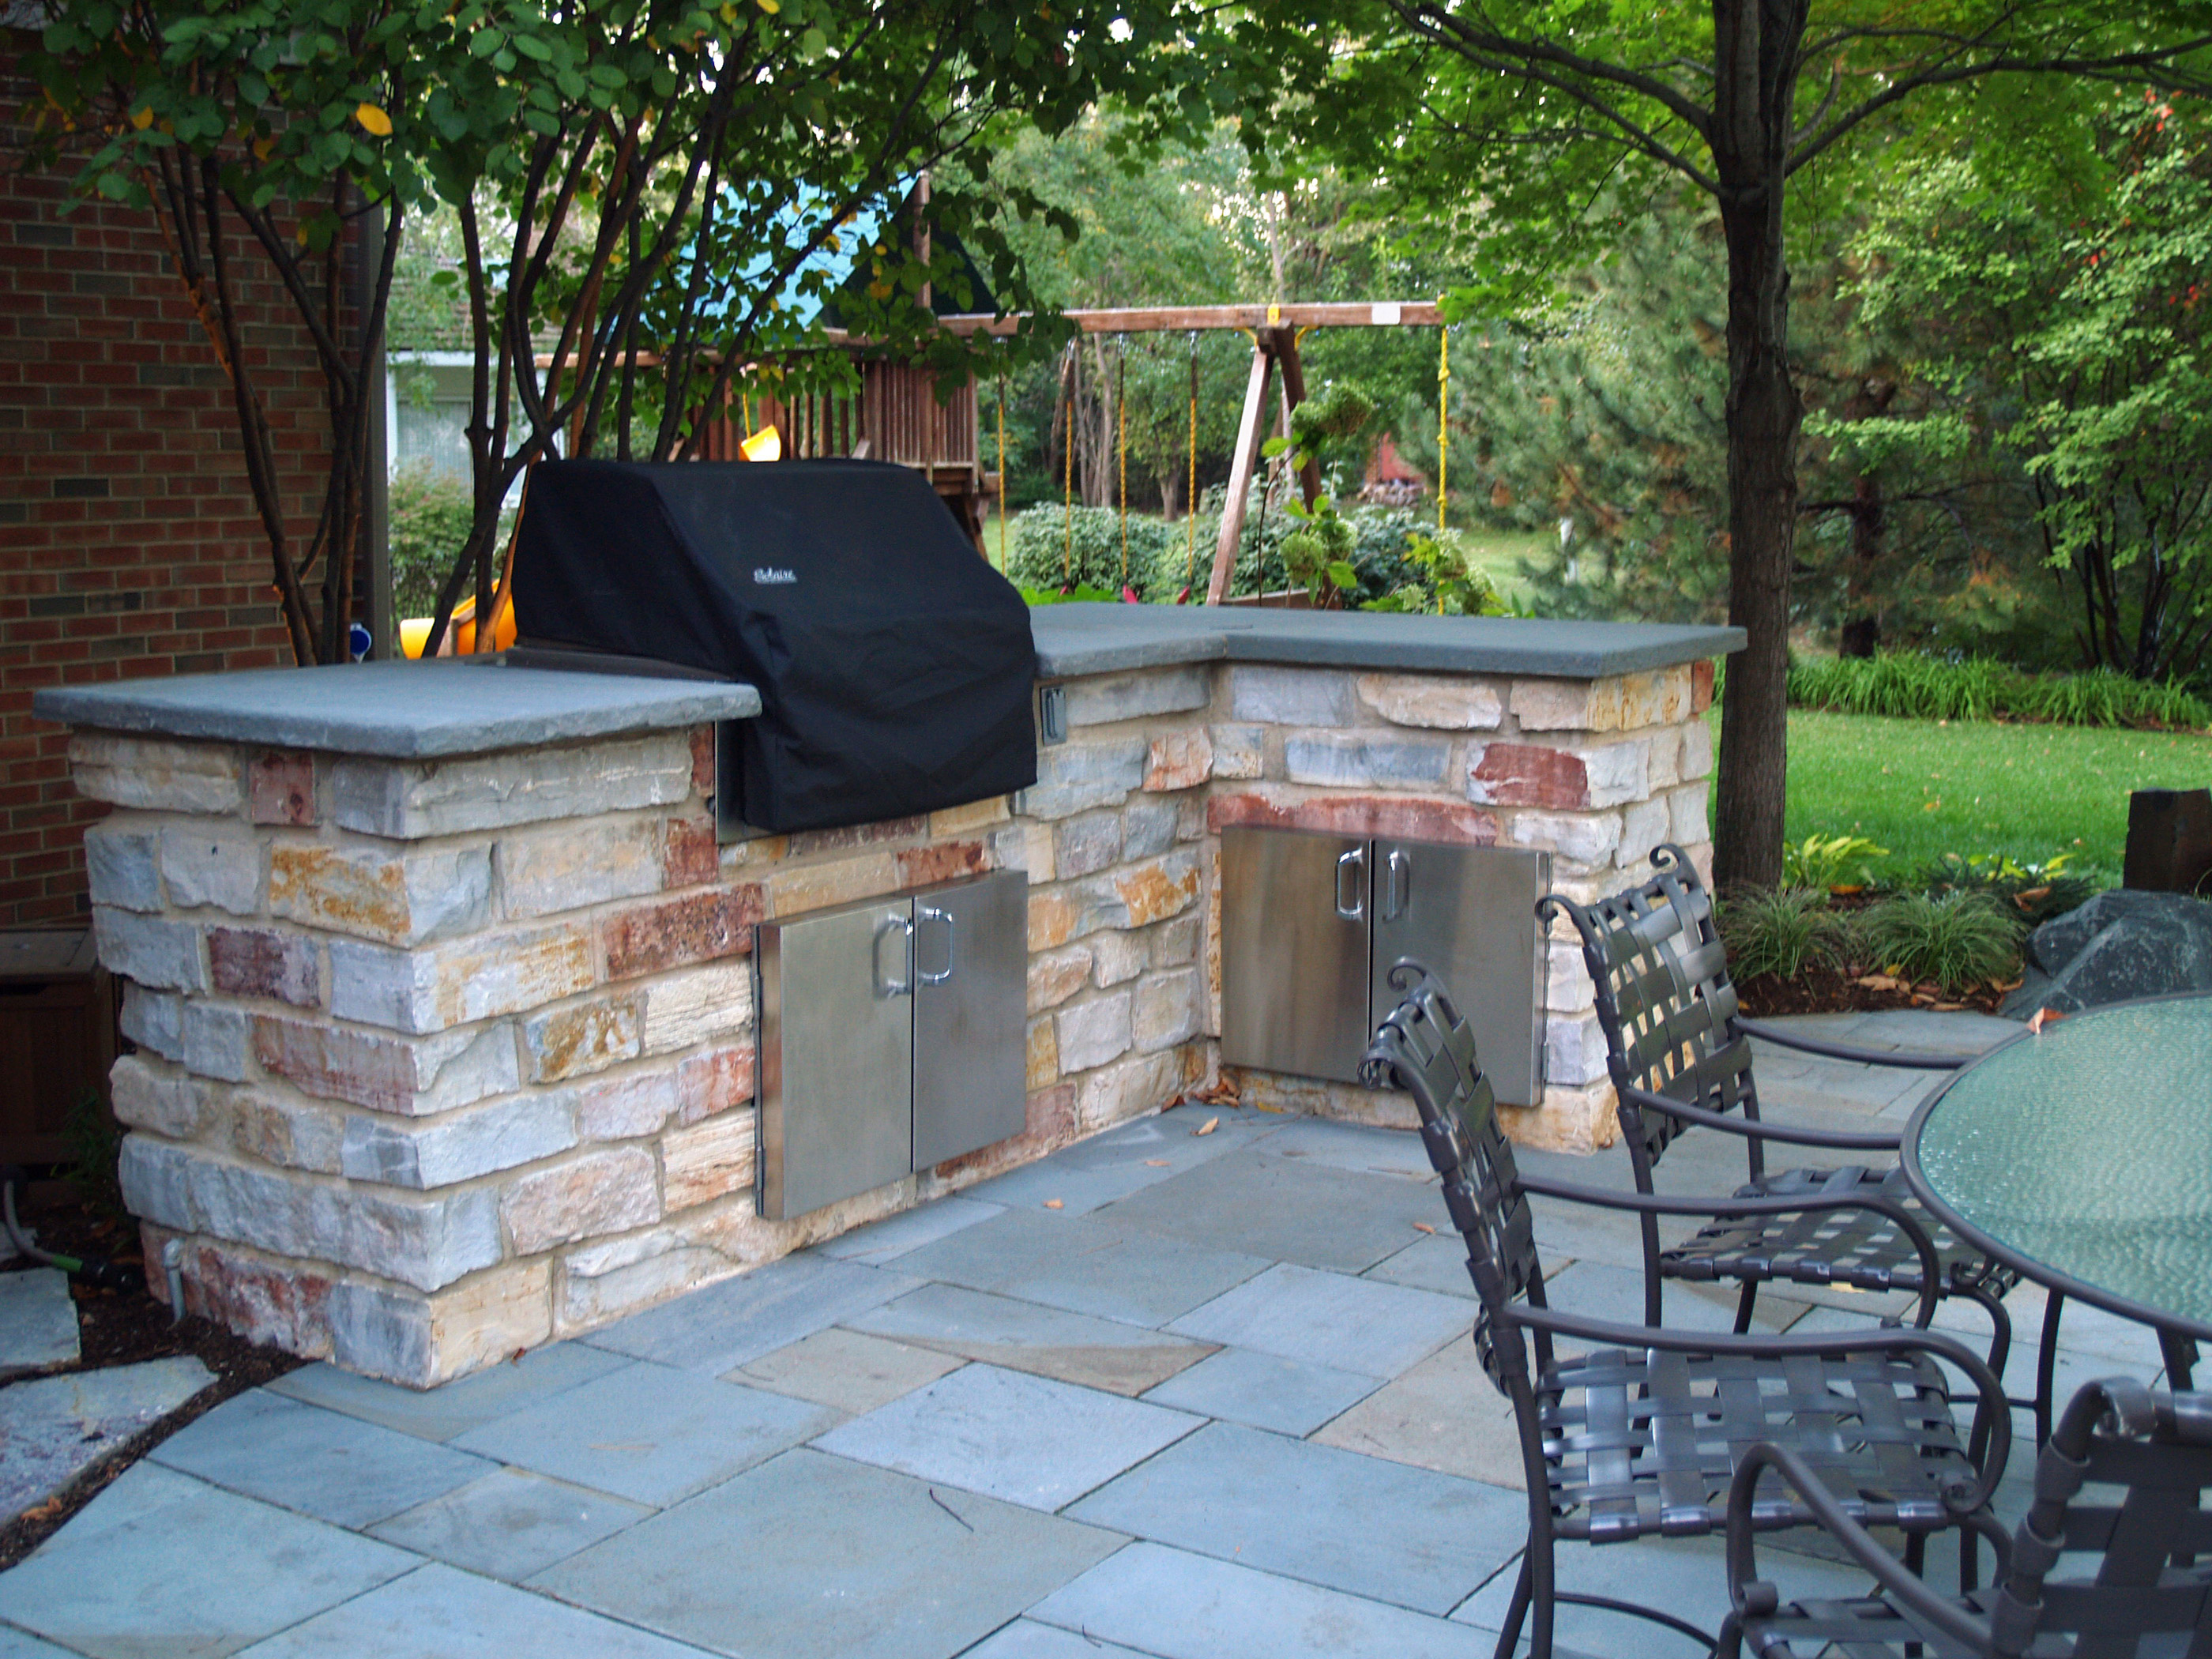 This outdoor BBQ grill and cooking area is constructed of chilton stone and finished with a bluestone top.